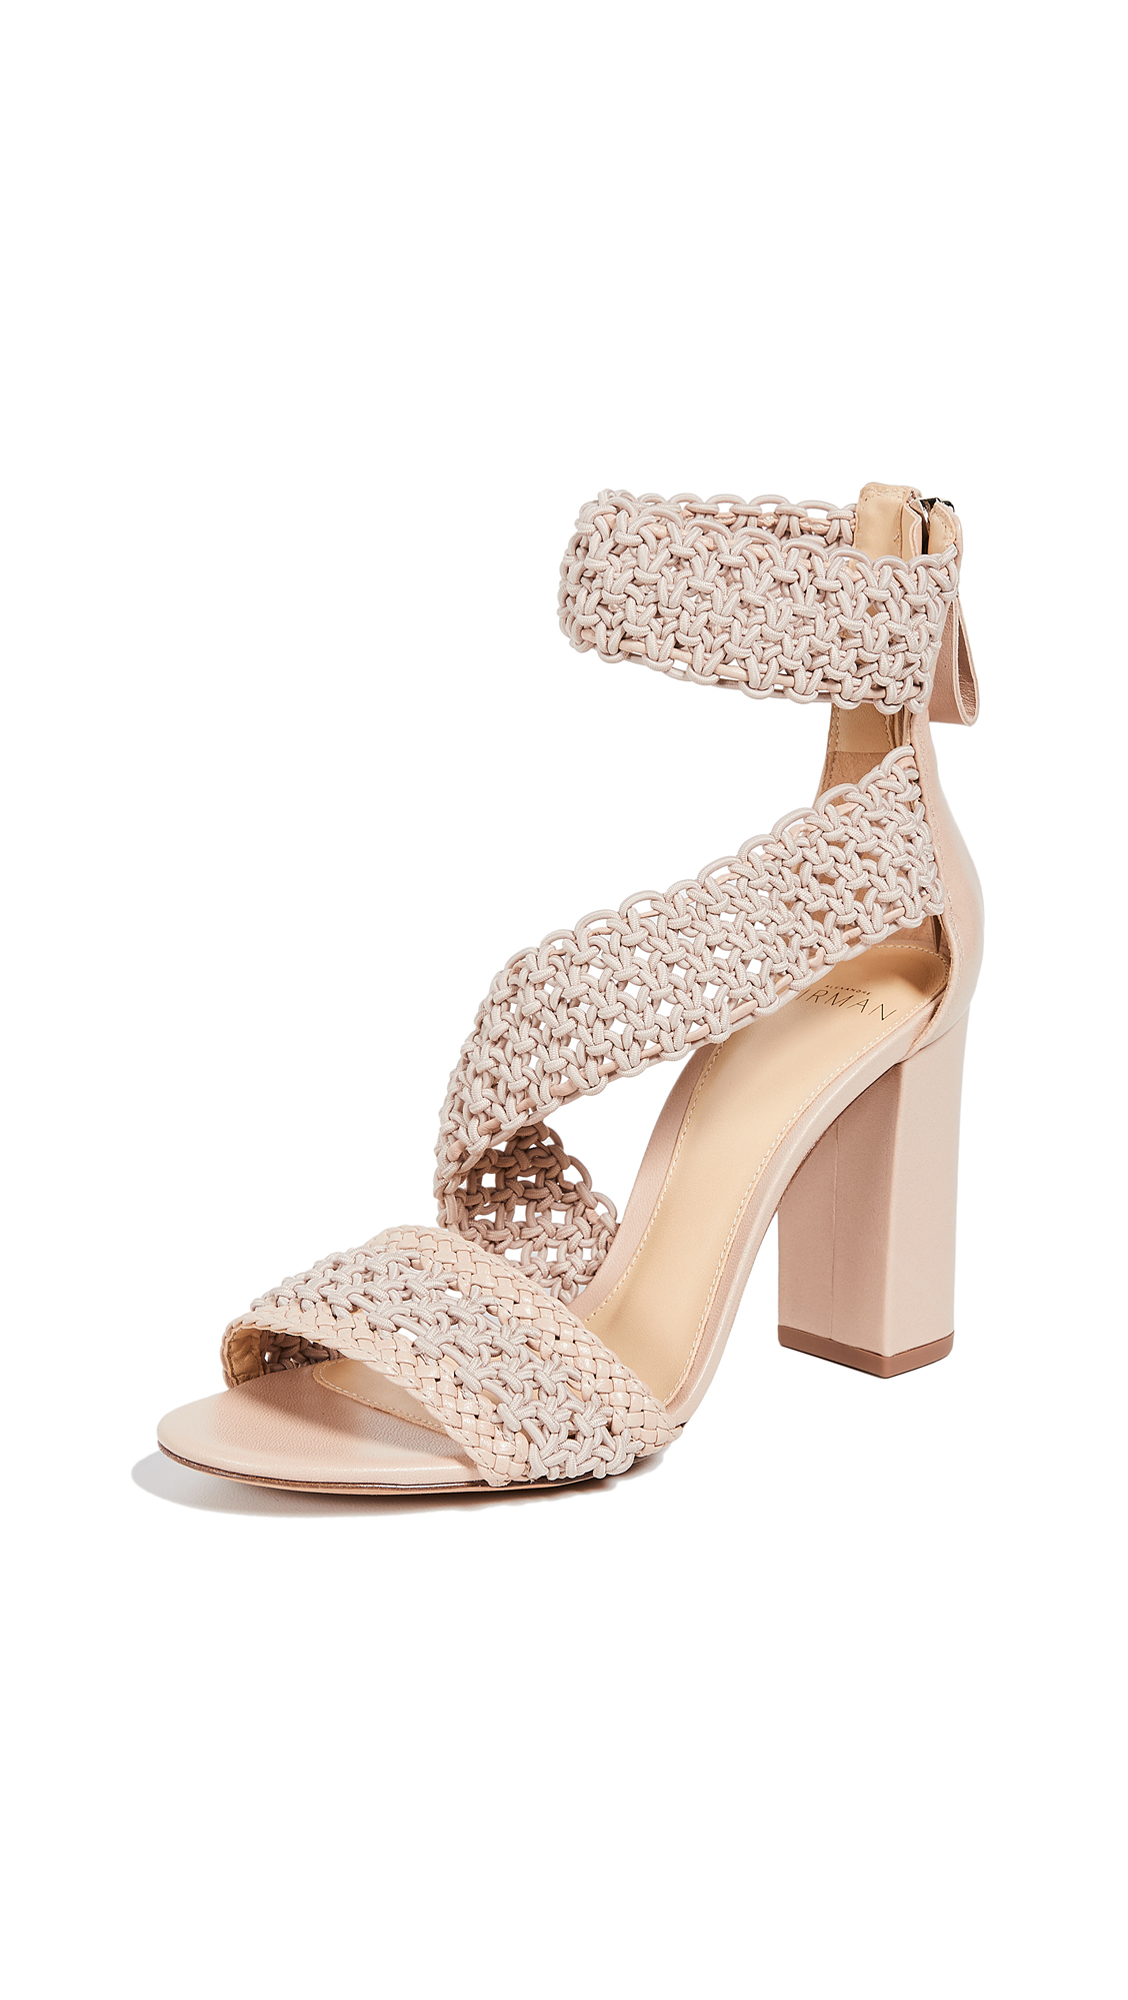 Alexandre Birman Lanny 90mm Sandals - Light Sand